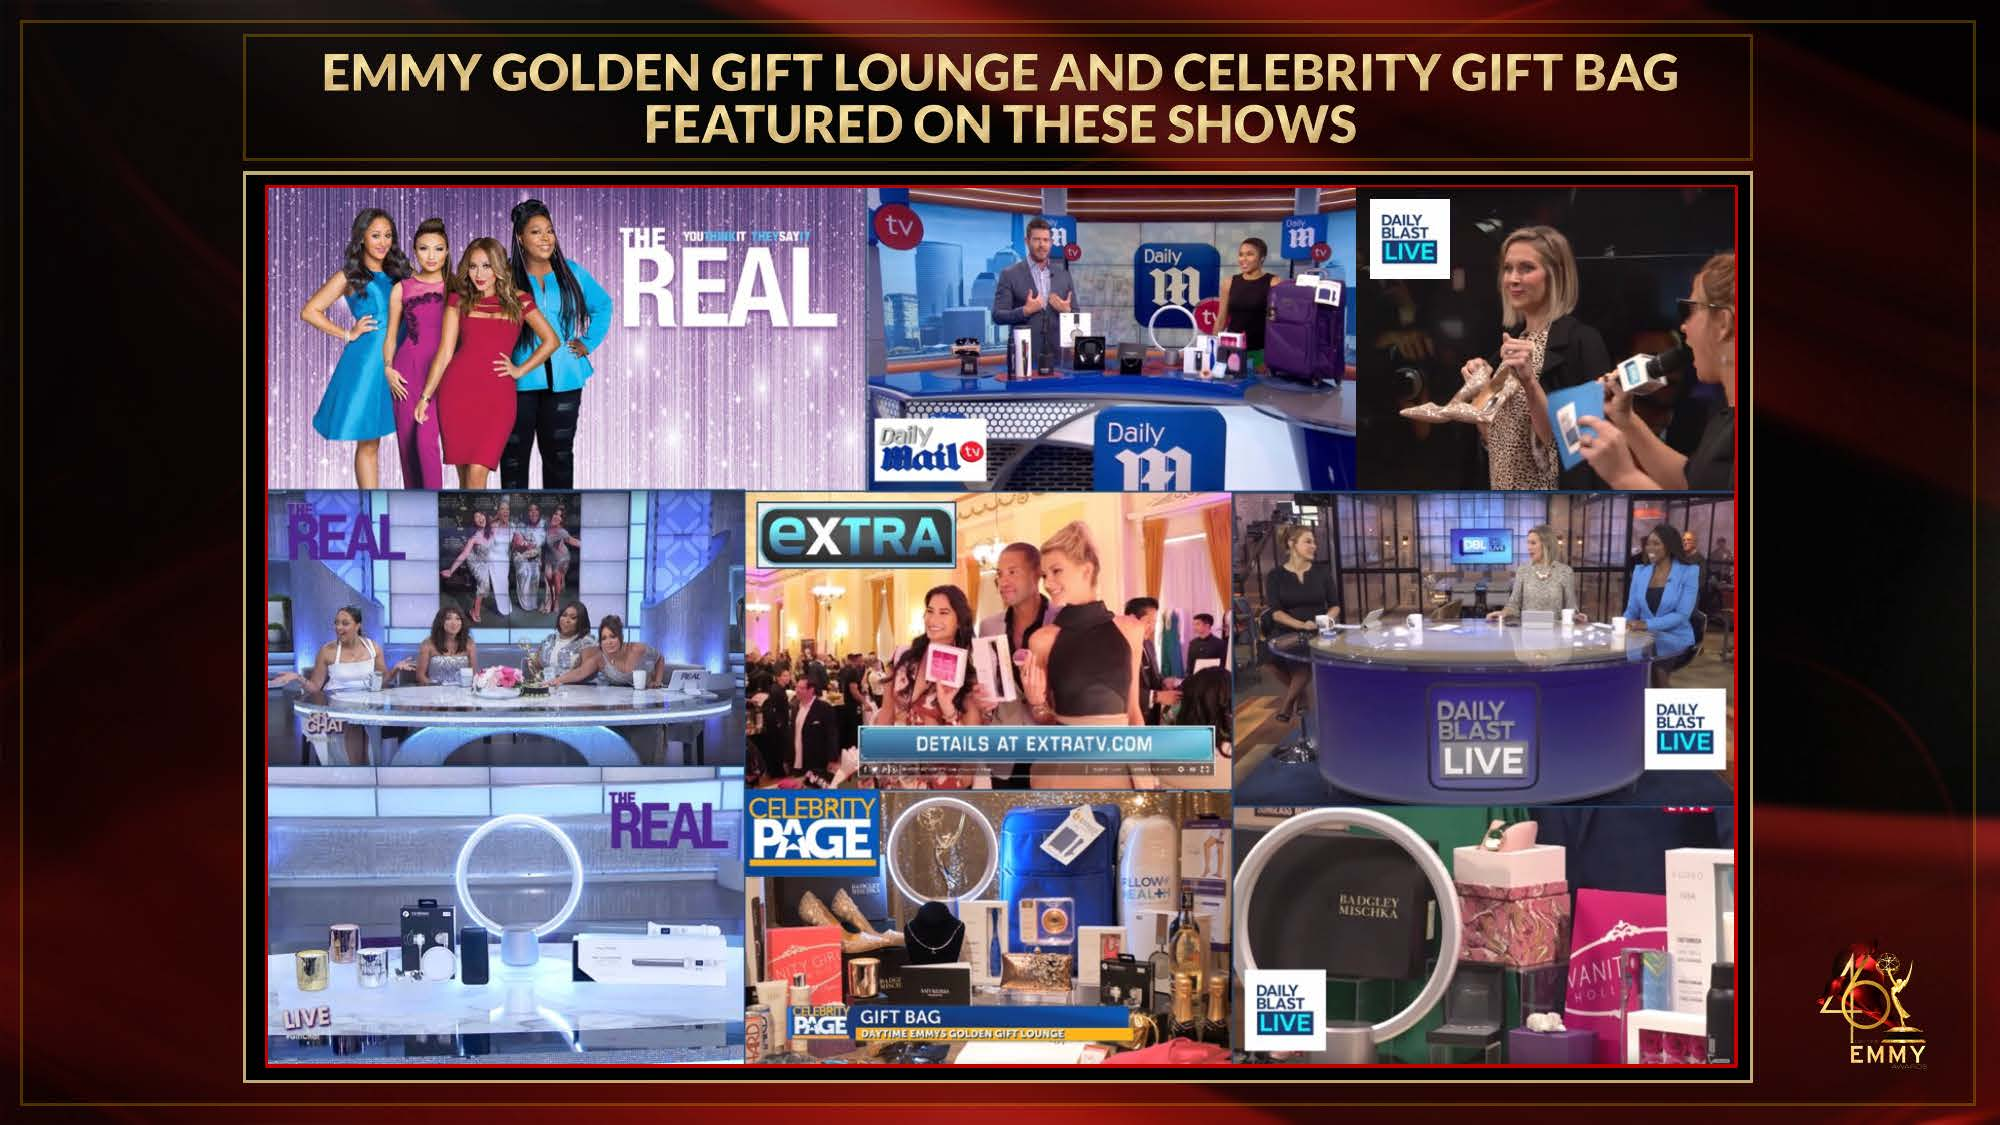 46TH EMMYS AWARDS DECK - GIFT LOUNGE PAGES ONLY_Page_4.jpg